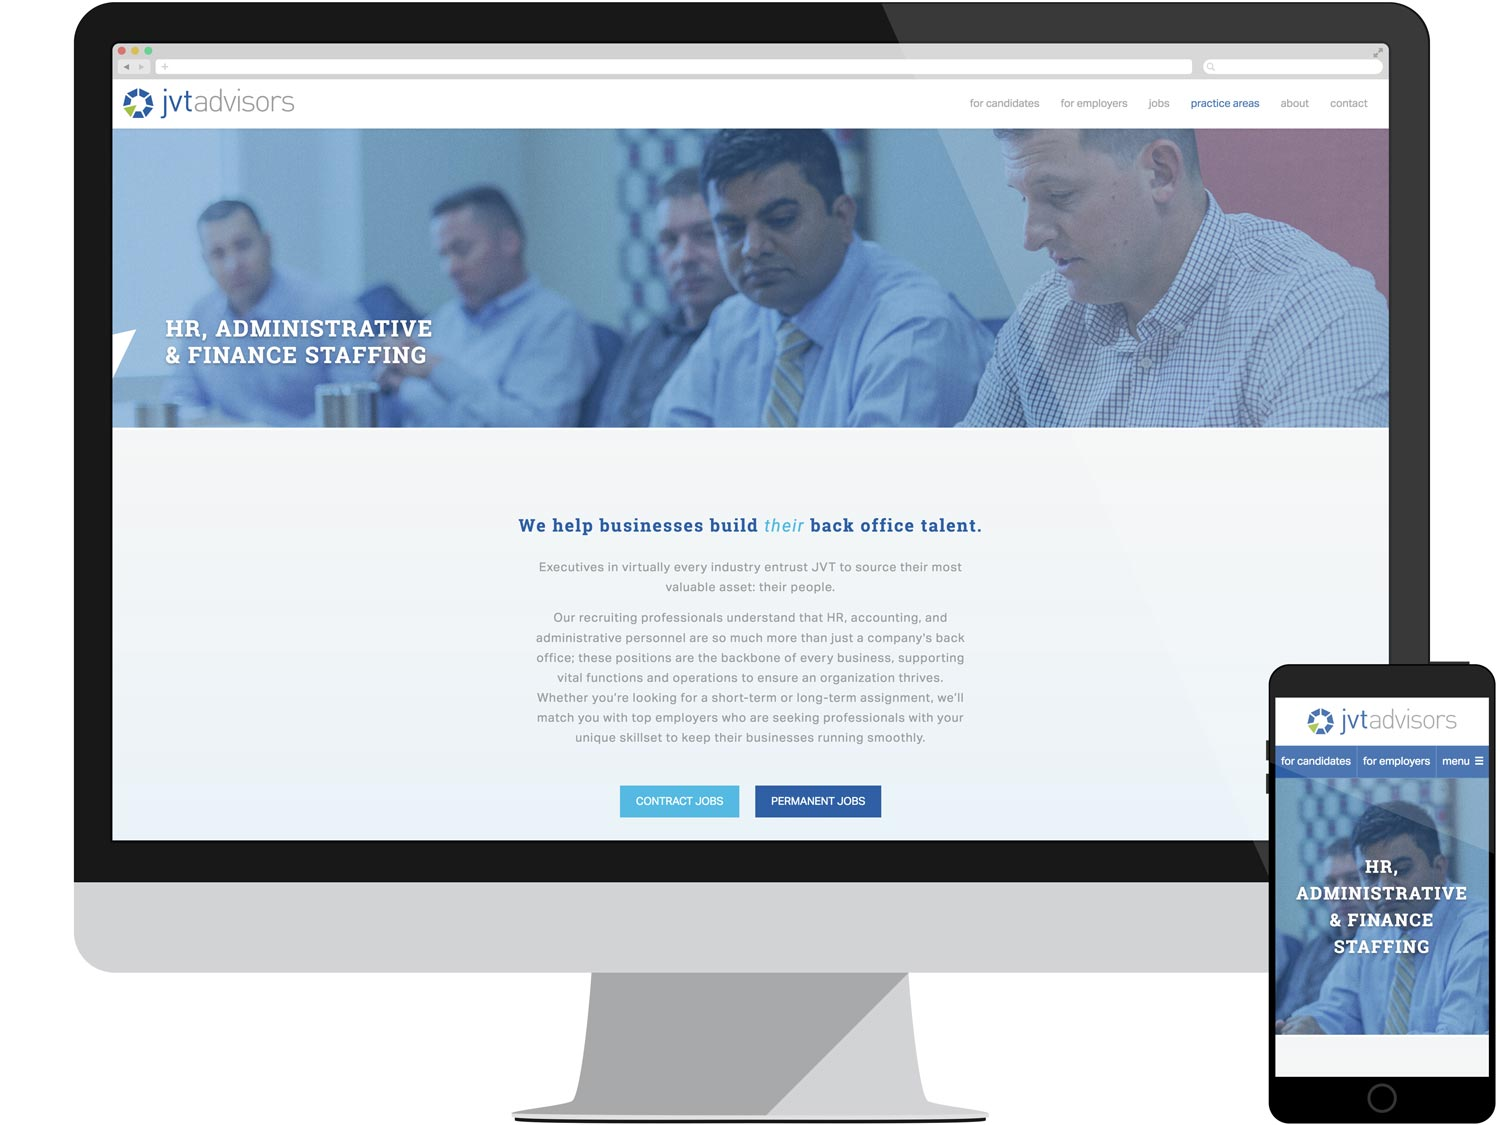 Landing Page - HR, Administrative & Finance Staffing